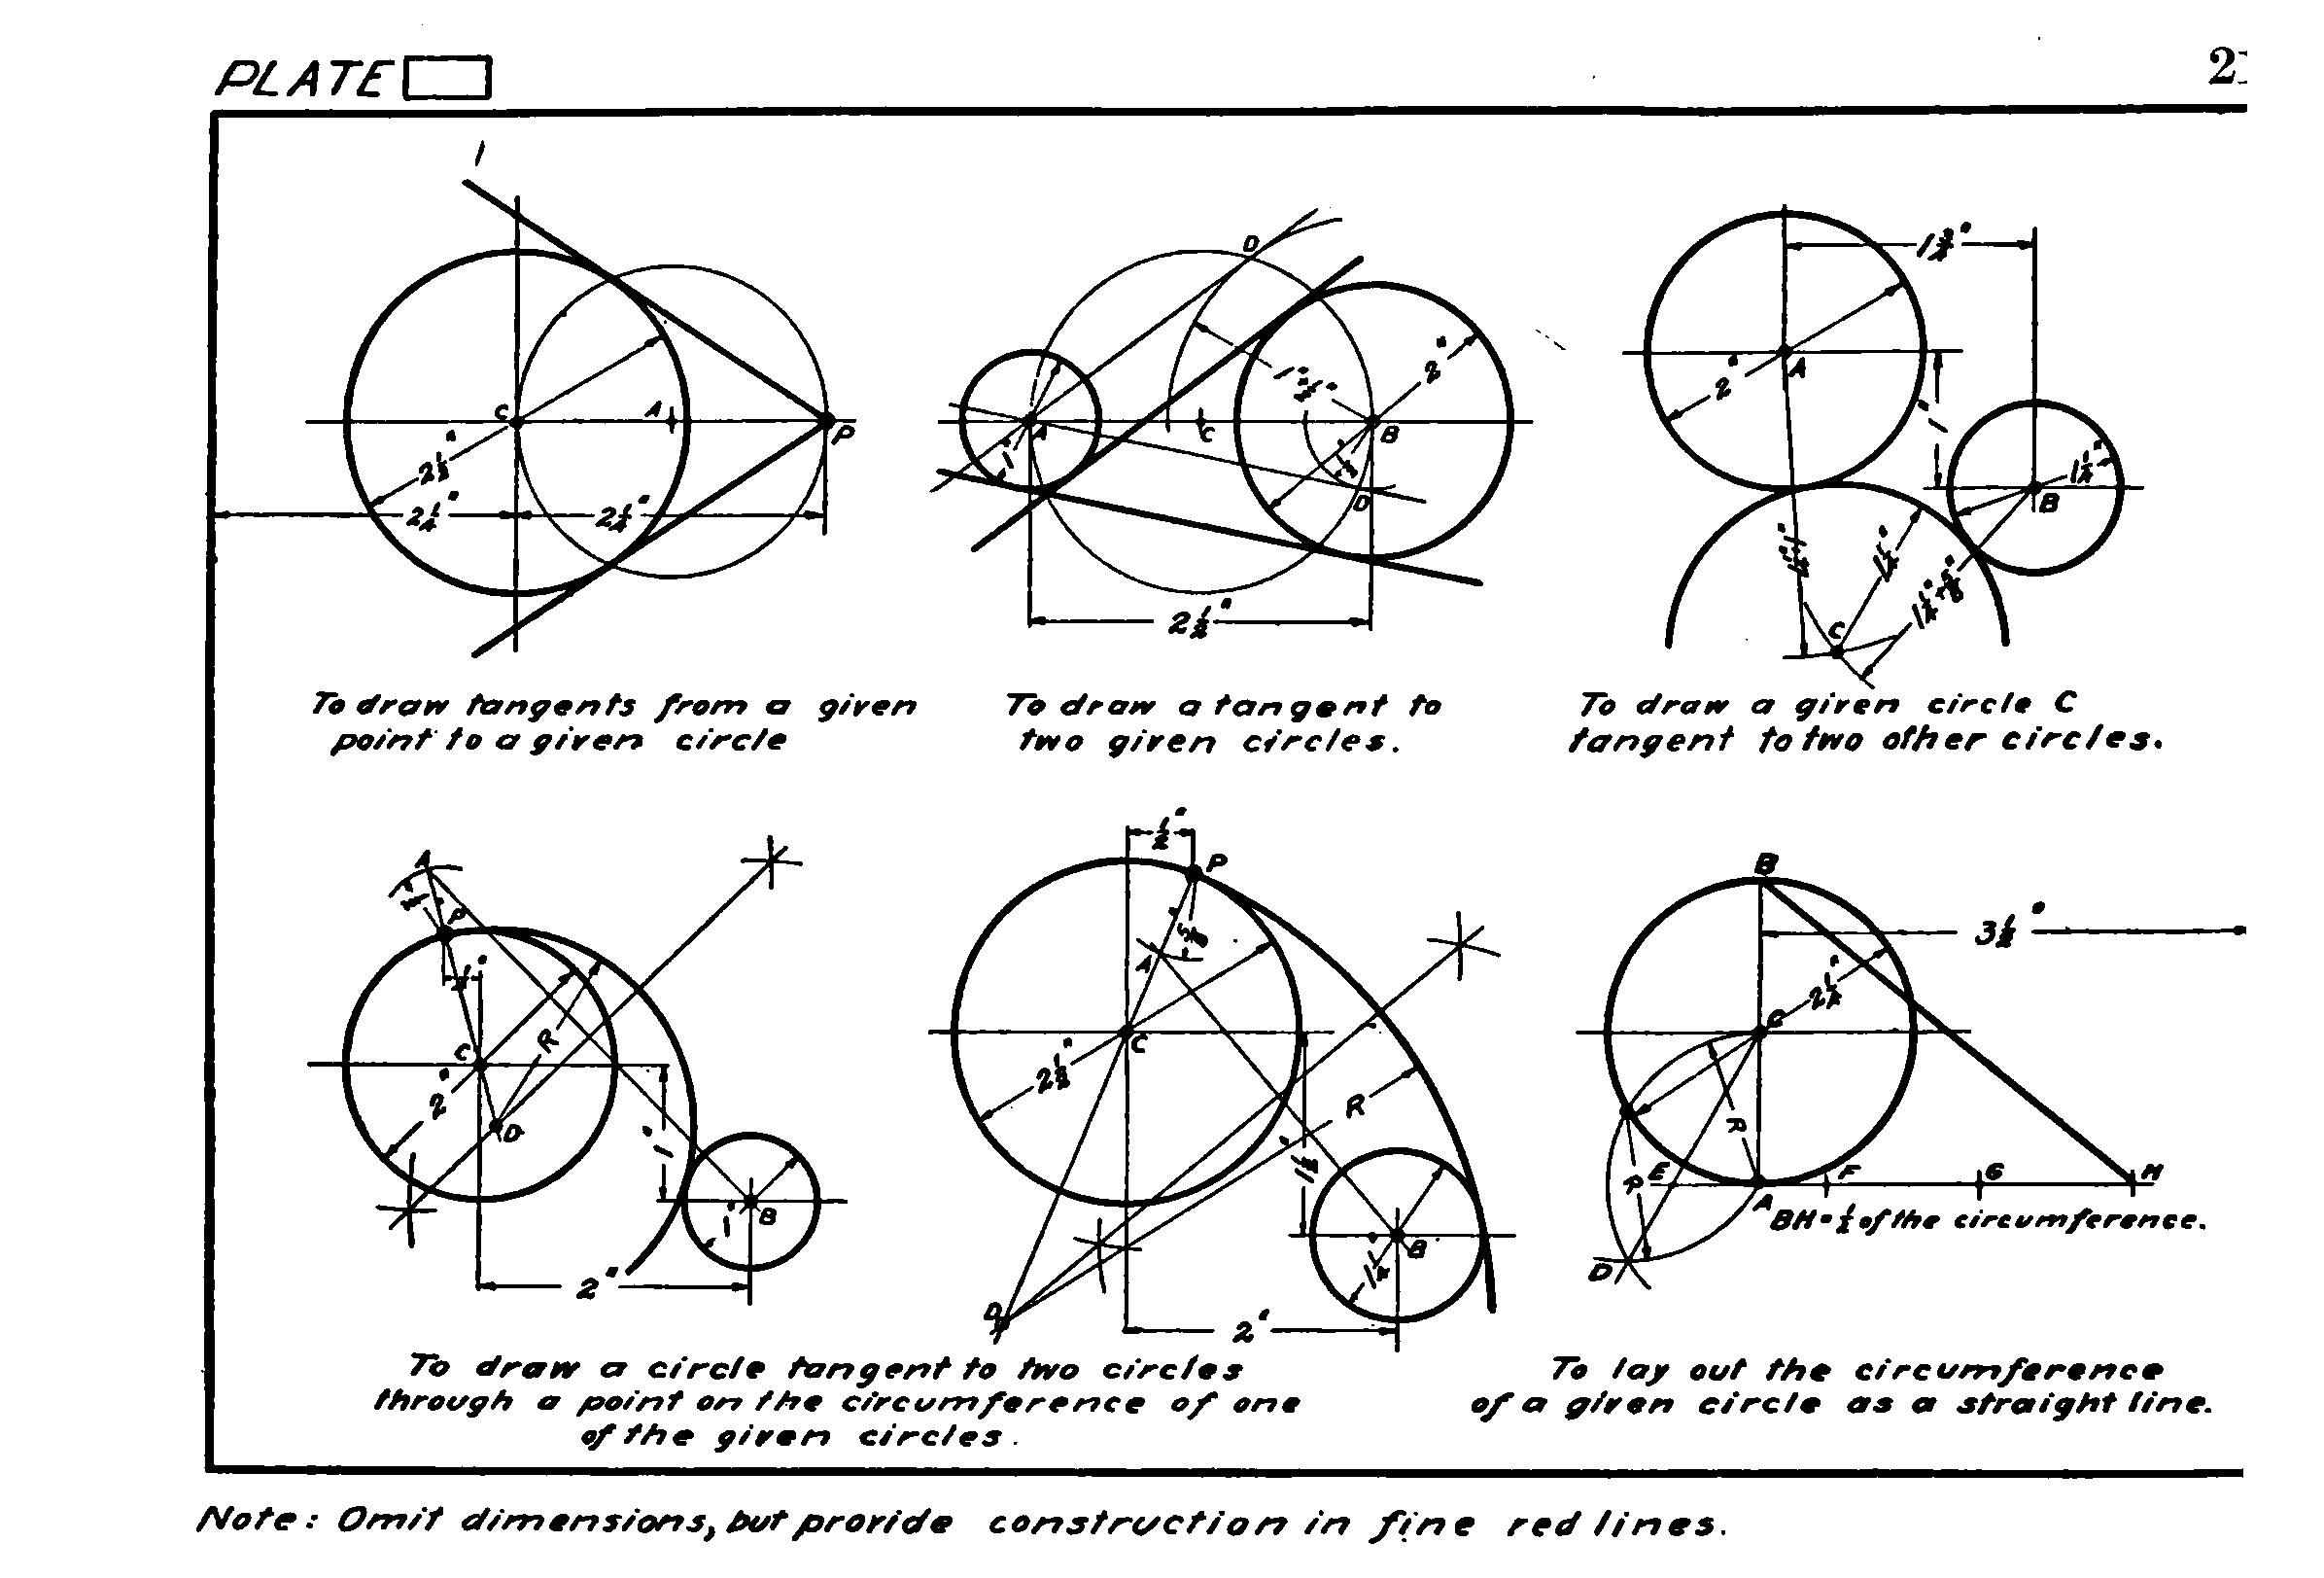 Geometrical Drawing: A Collection of Plates for Practical